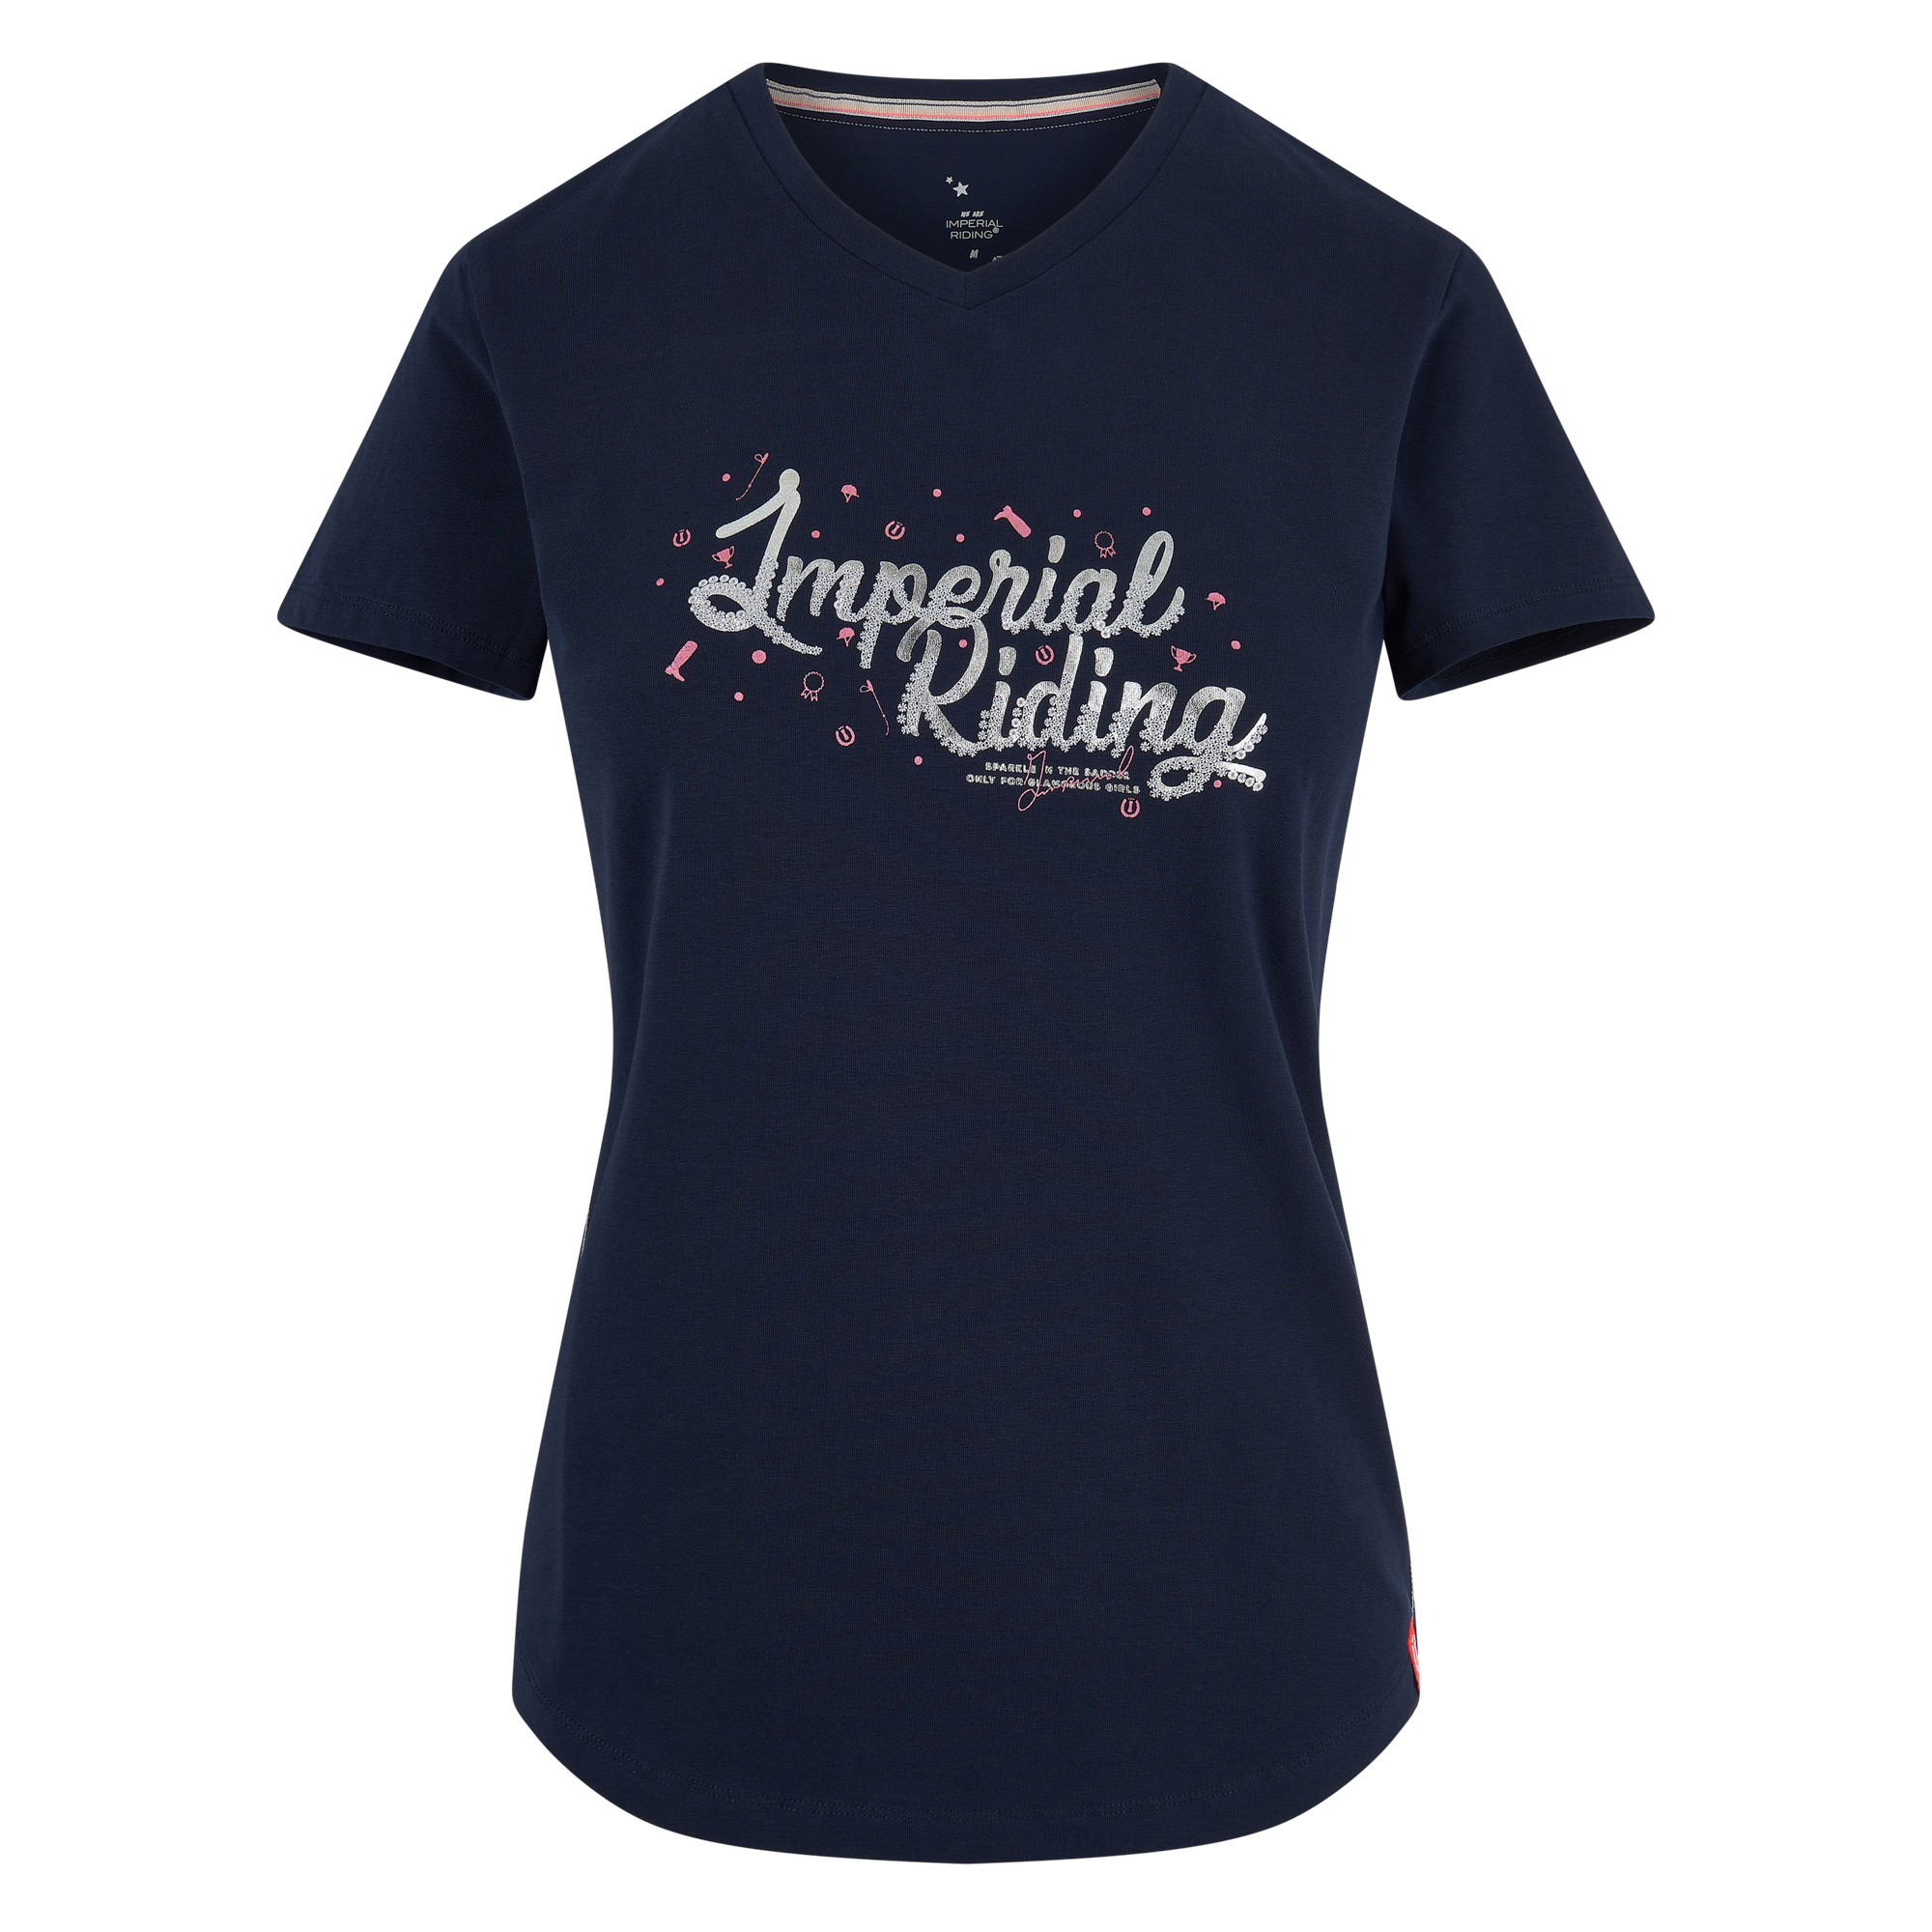 Imperial Riding T-shirt Sweet